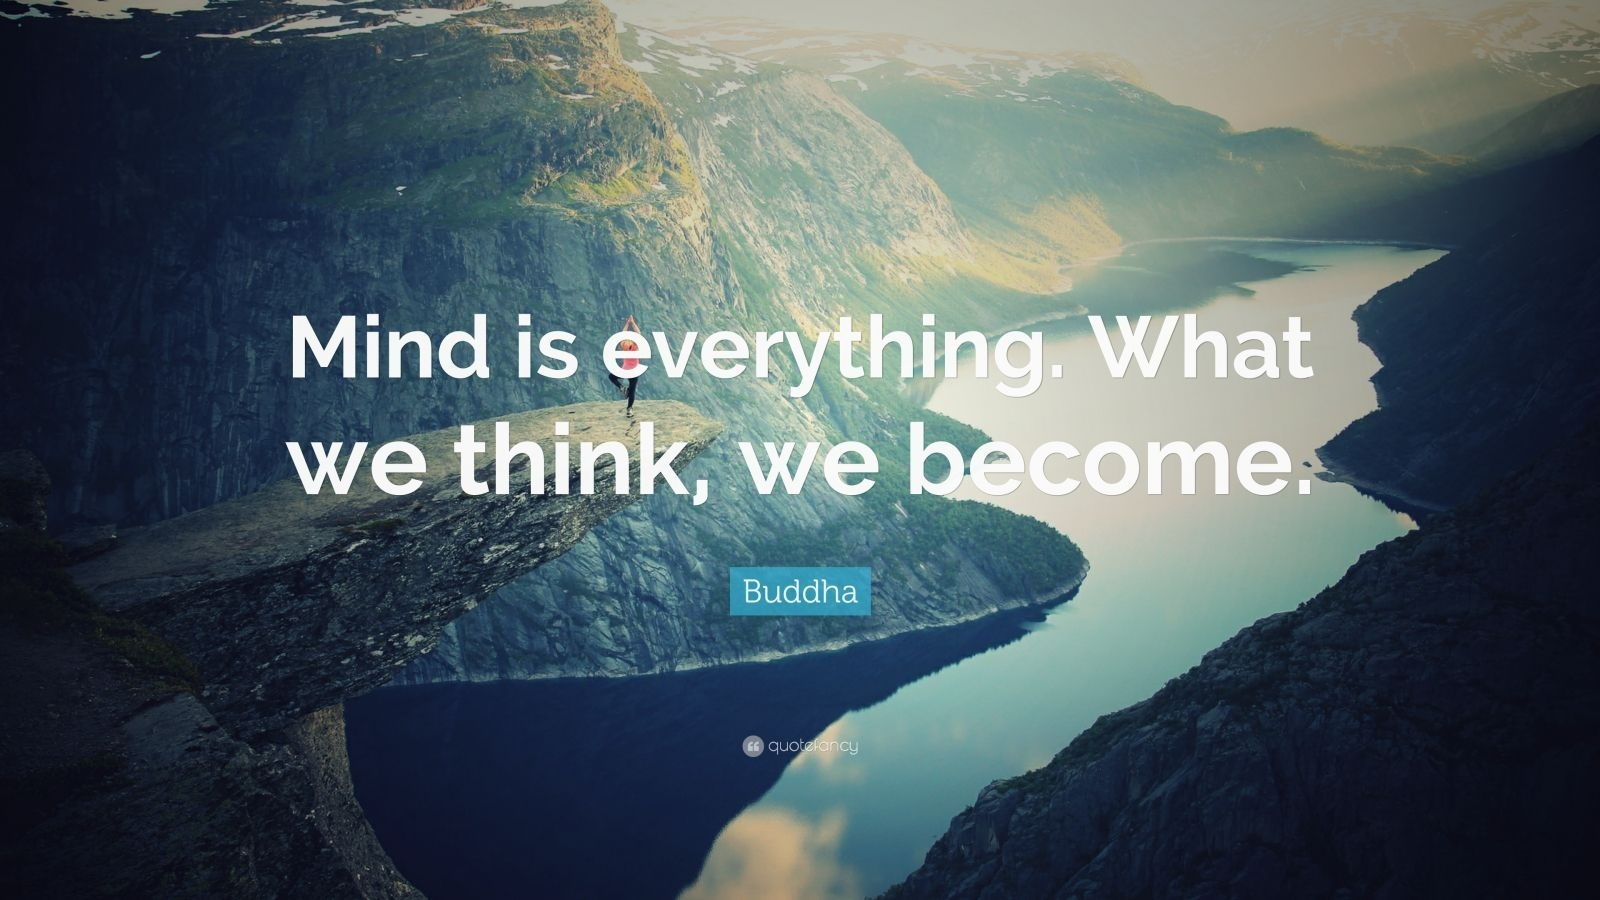 buddha quotes (100 wallpapers) - quotefancy